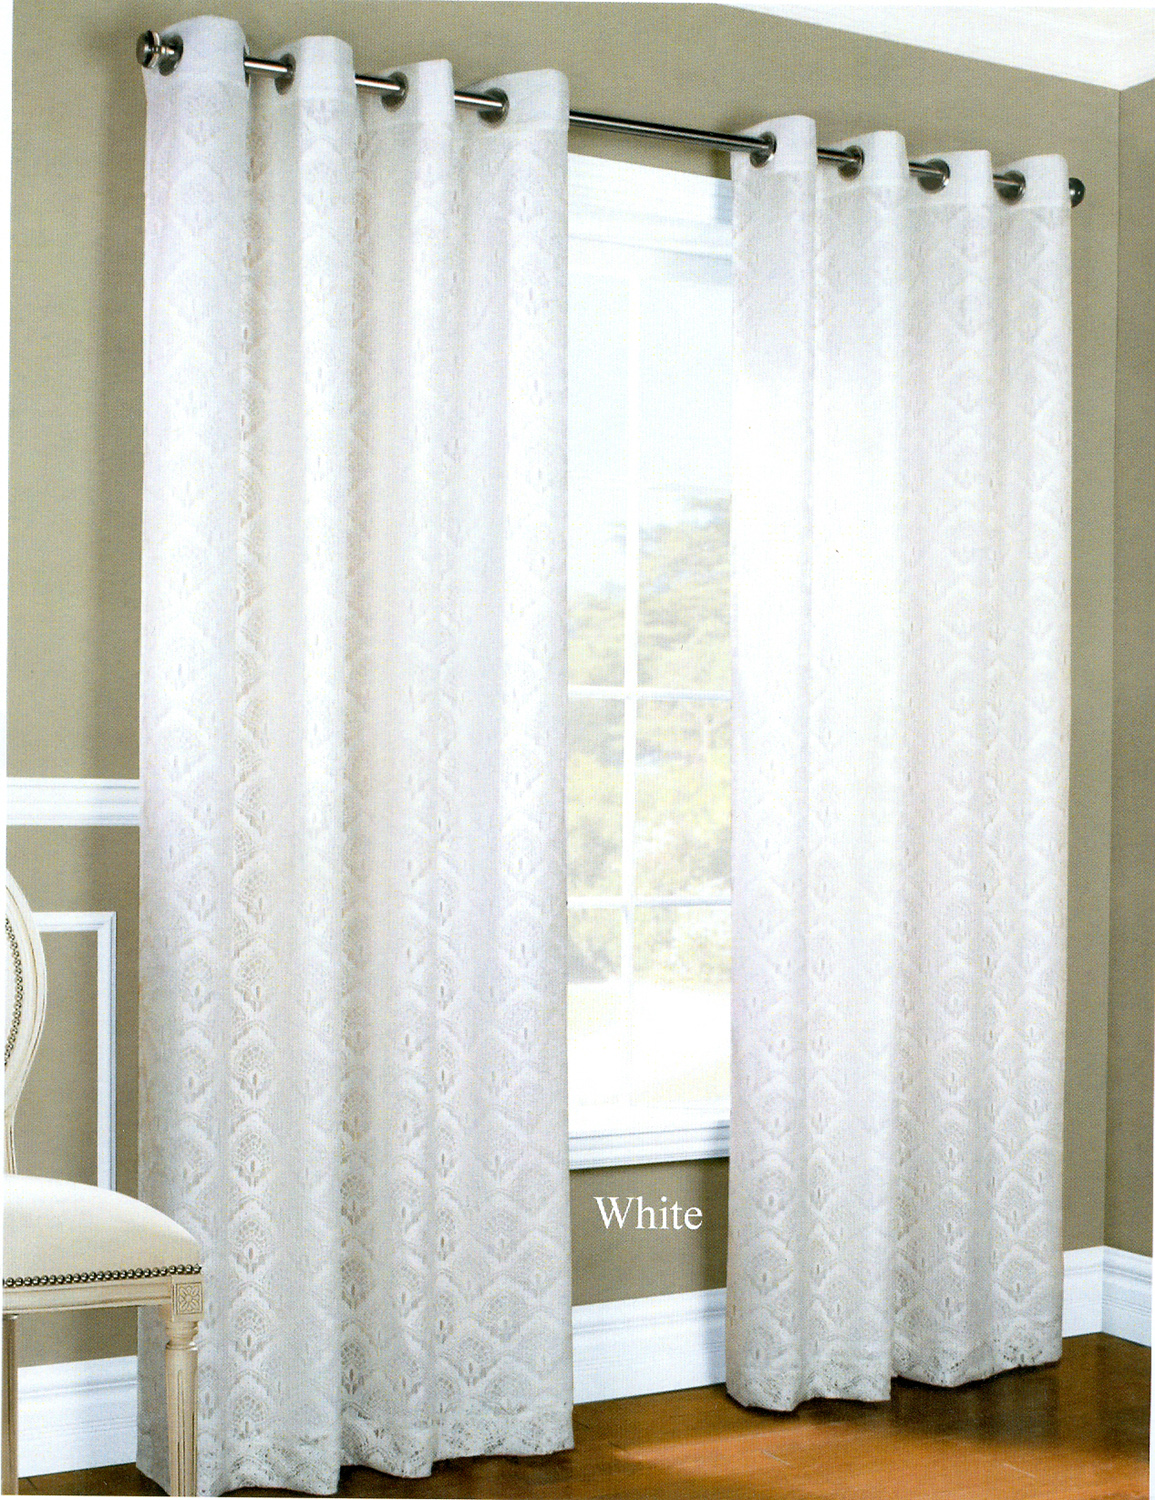 curtains thermal photo drapes pair me clearance impressive lined backed spotlight